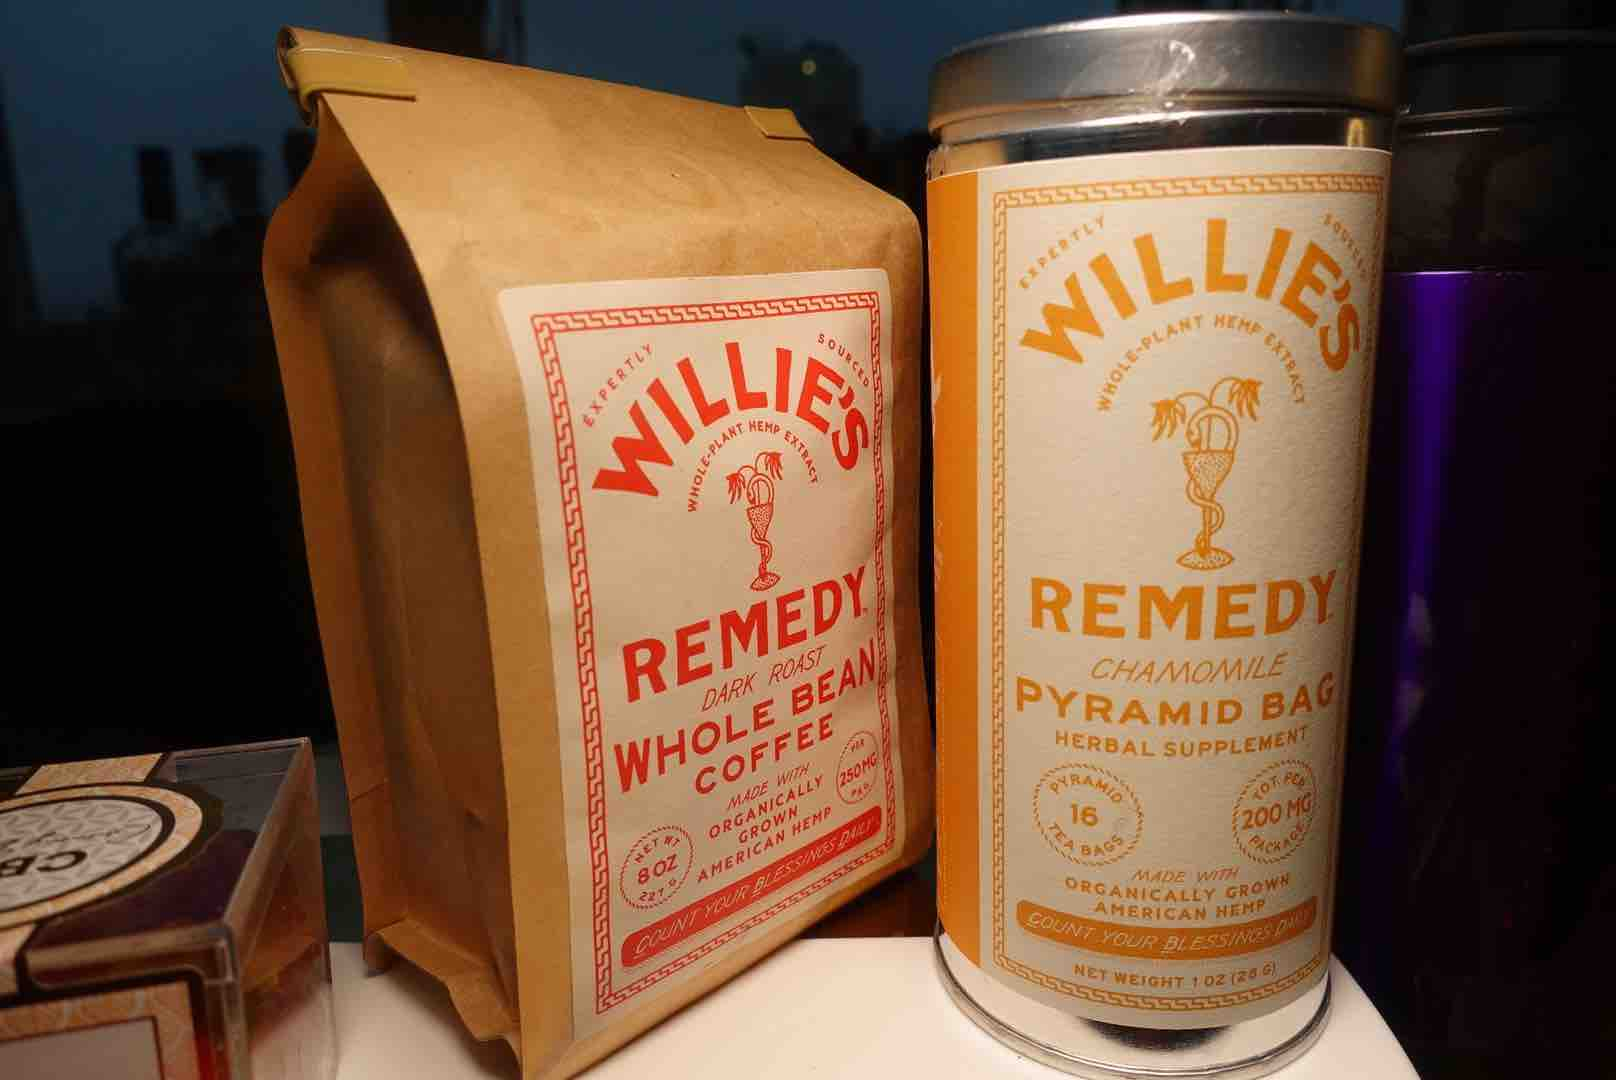 Willie's Remedy Hemp Top Things To Do This Valentine's Day At Home To Make It Romantic & Memorable